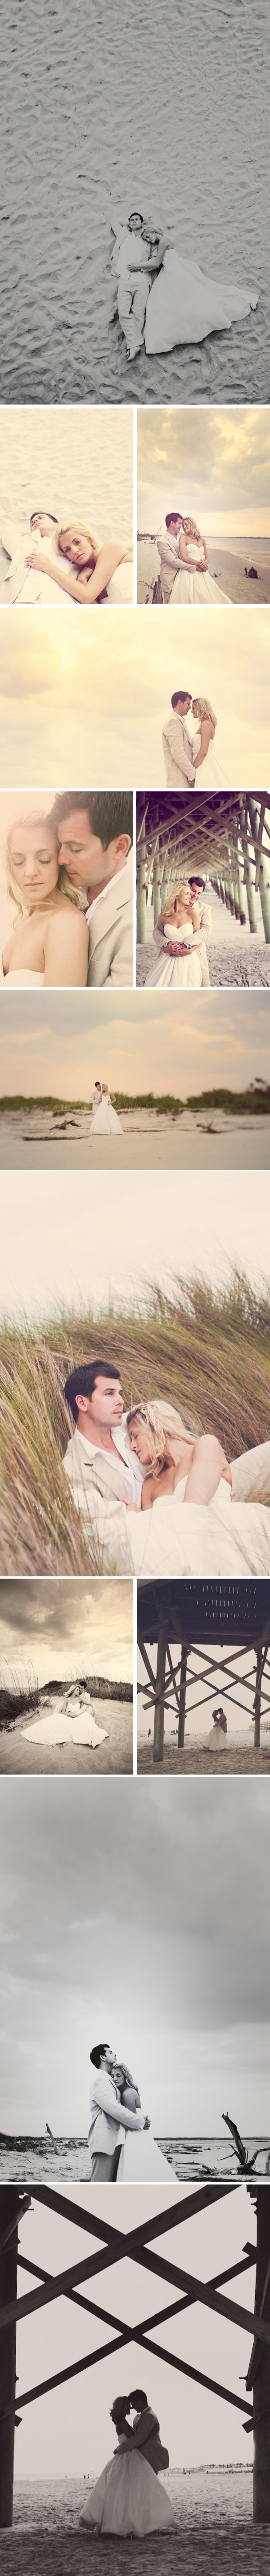 Romantic pre wedding photoshoot inspiration perfect for a beach wedding.